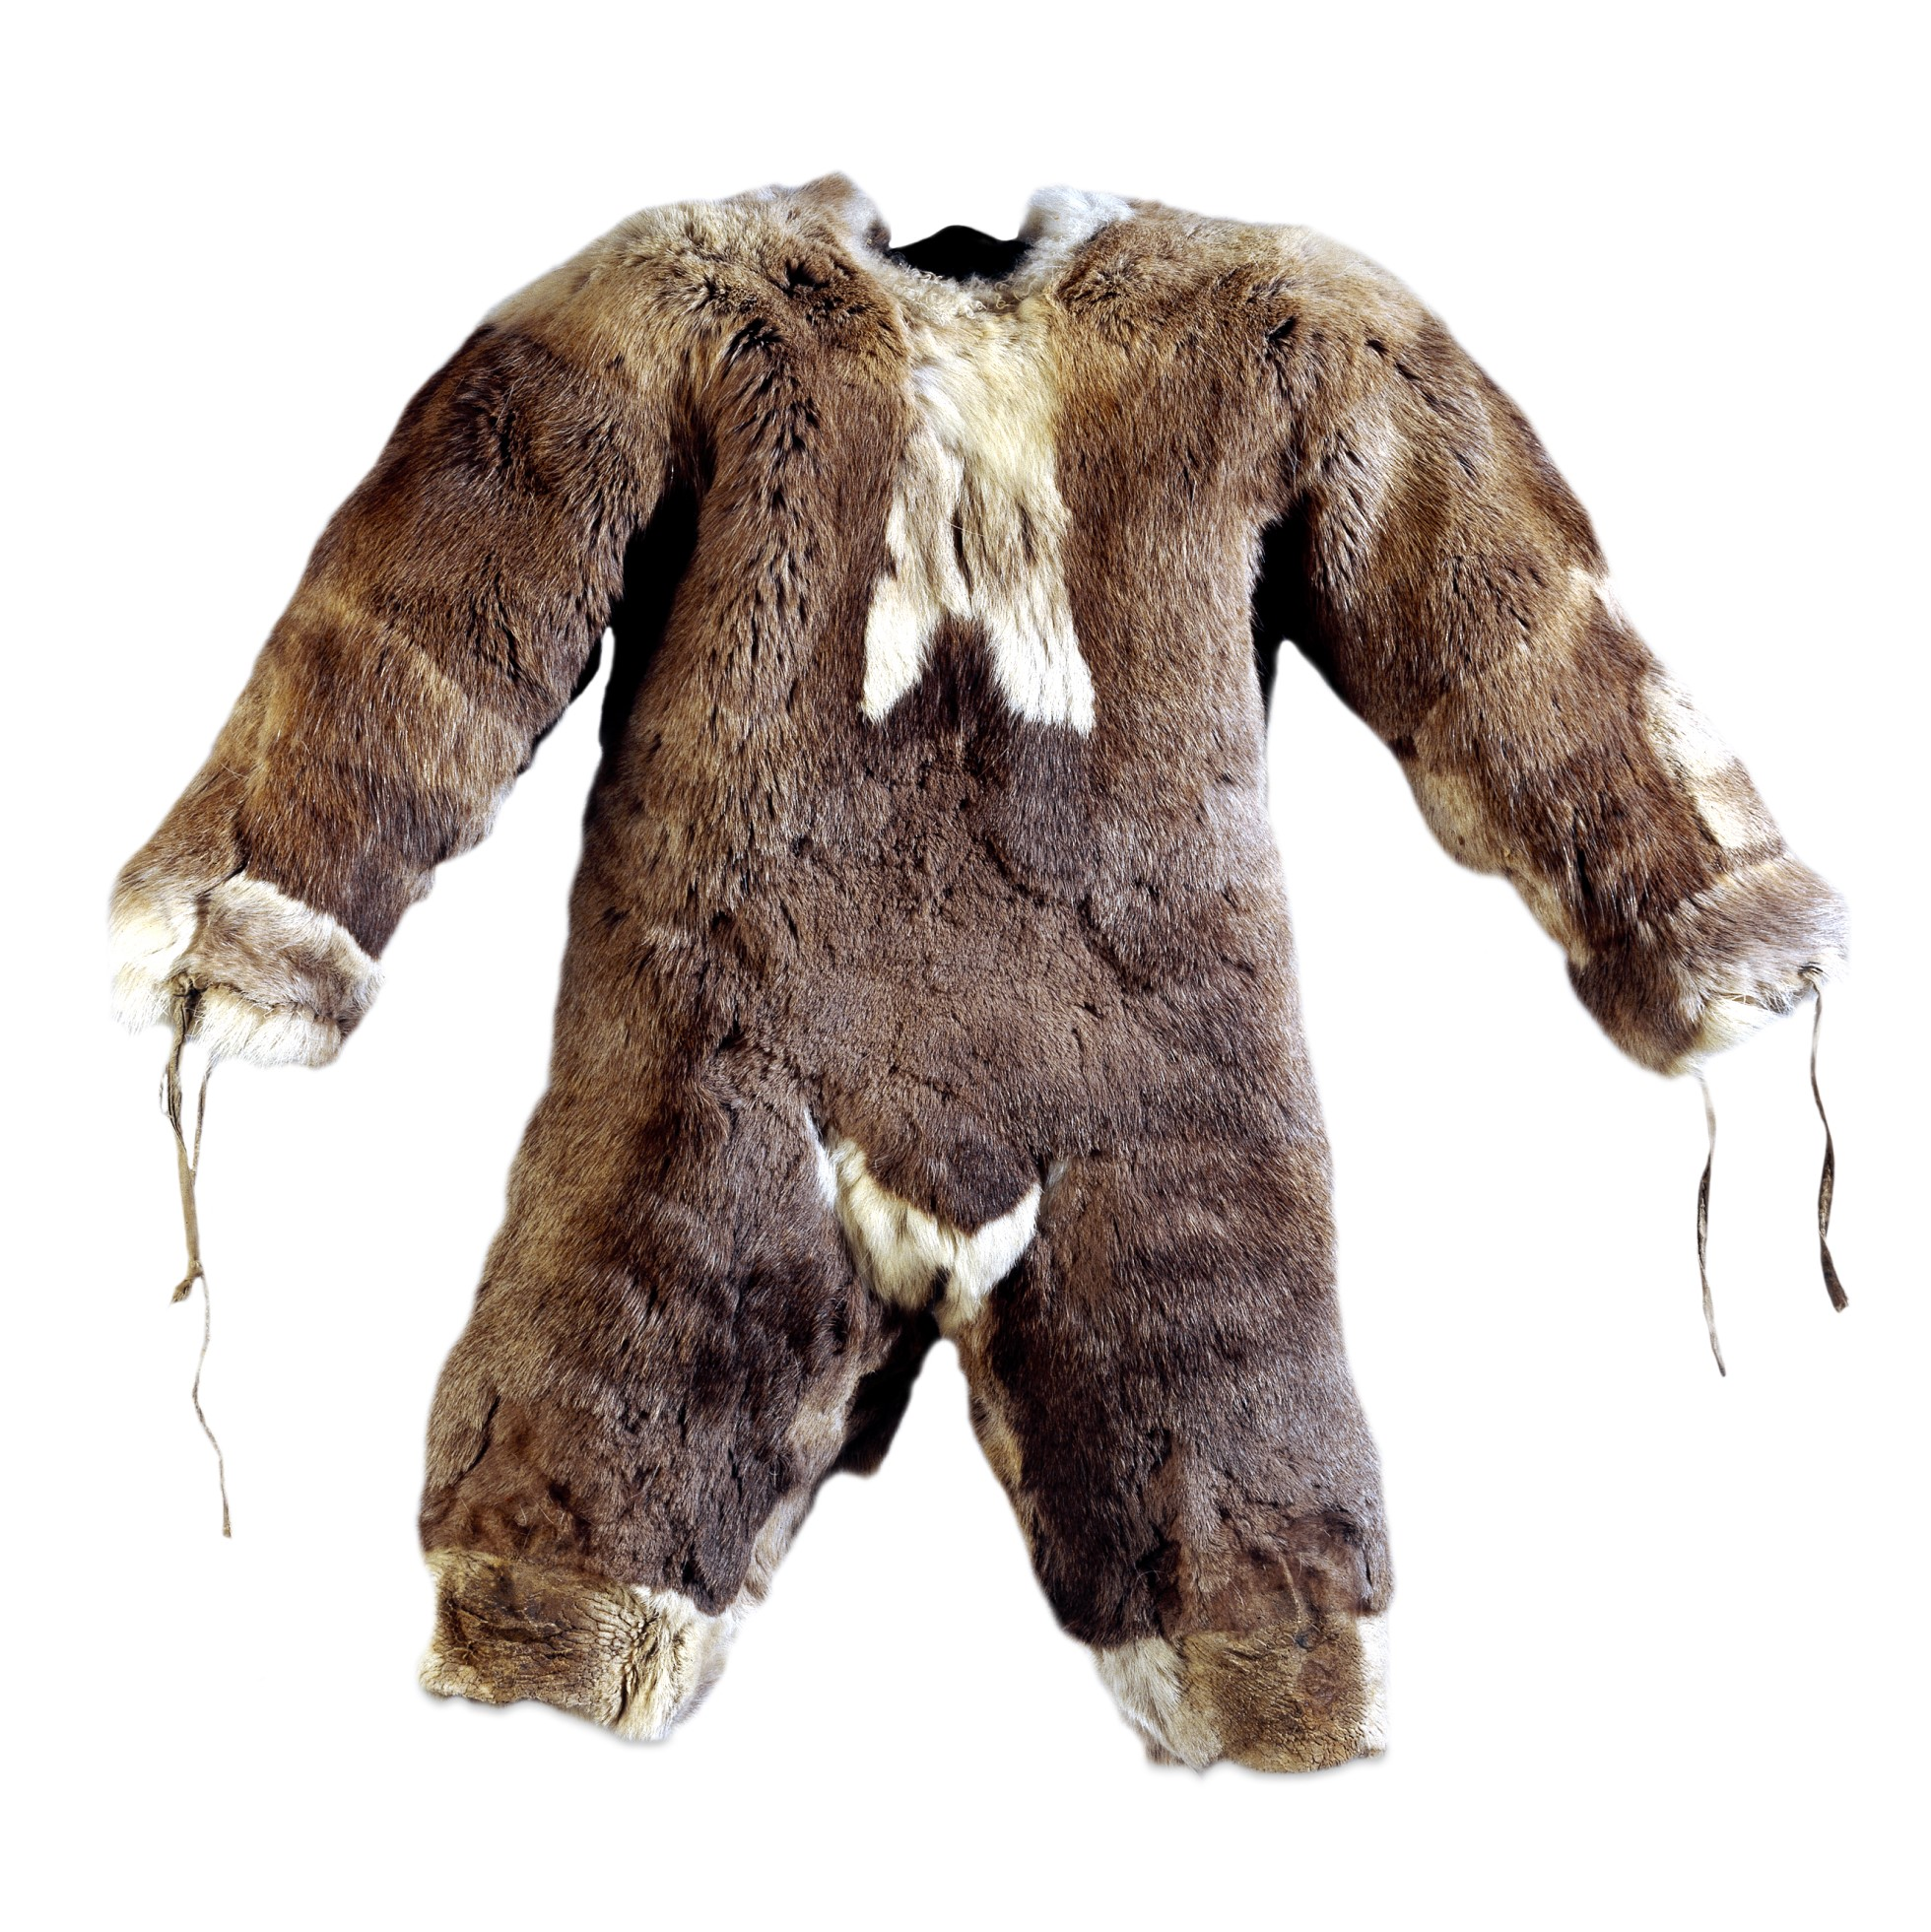 The suit is made of brown fur with white trimming. There are ties on the sleeves.